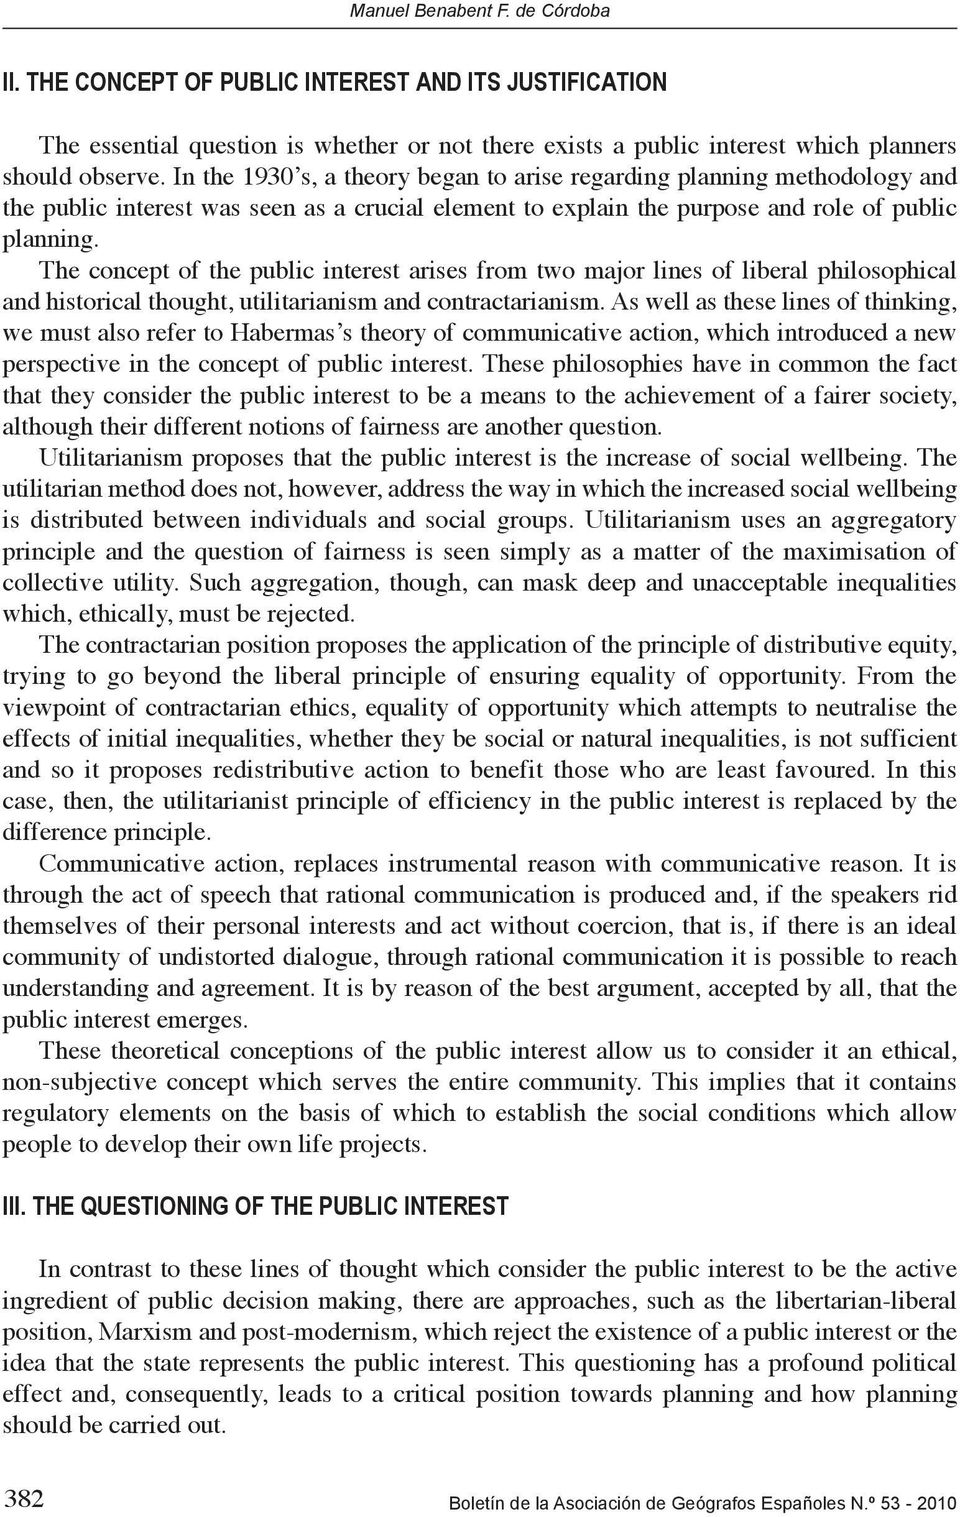 The concept of the public interest arises from two major lines of liberal philosophical and historical thought, utilitarianism and contractarianism.